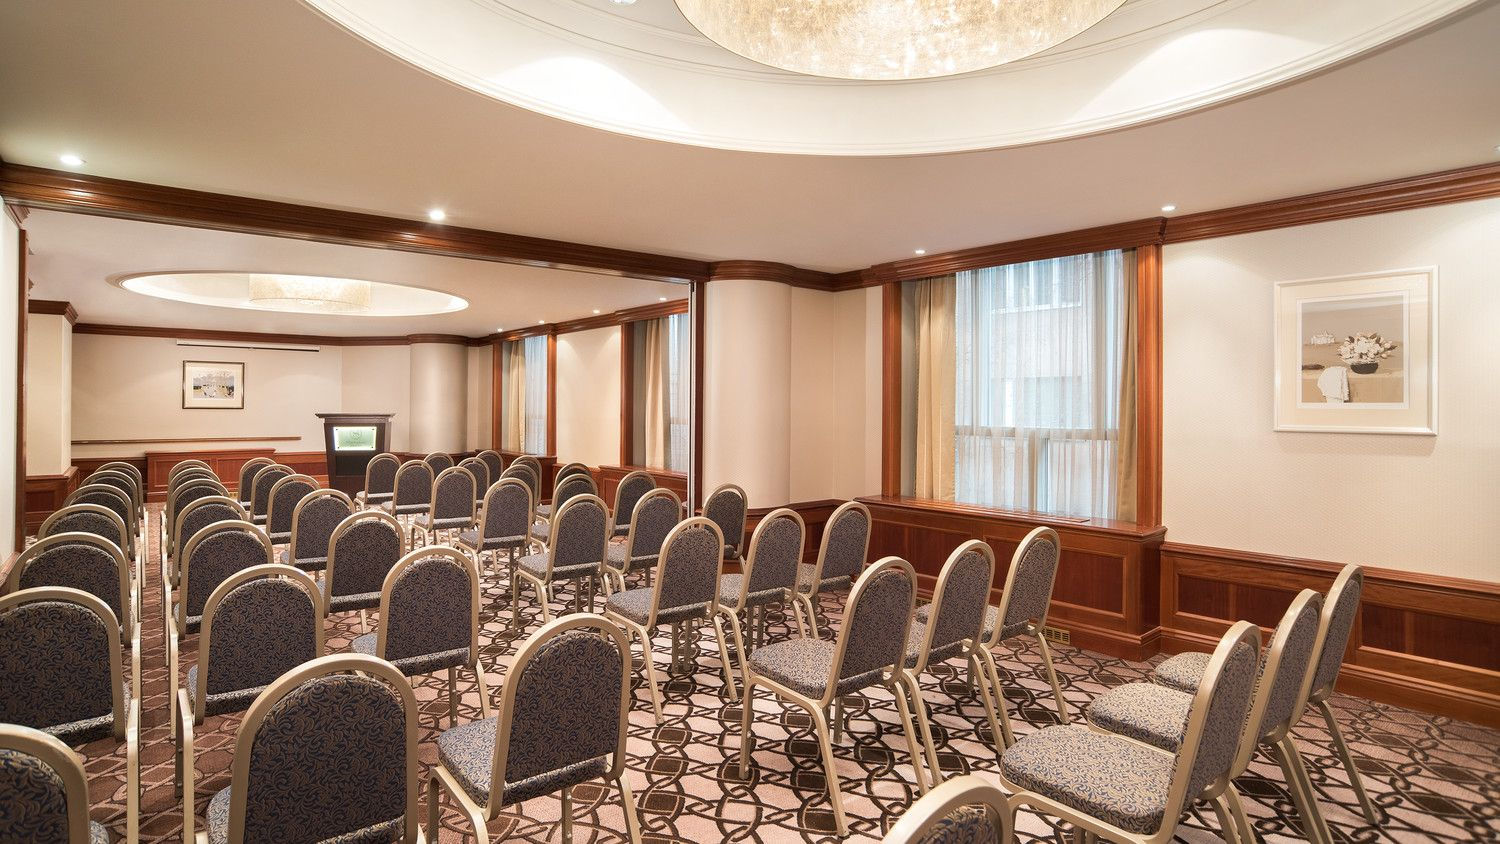 Pula Opatija Meeting Room